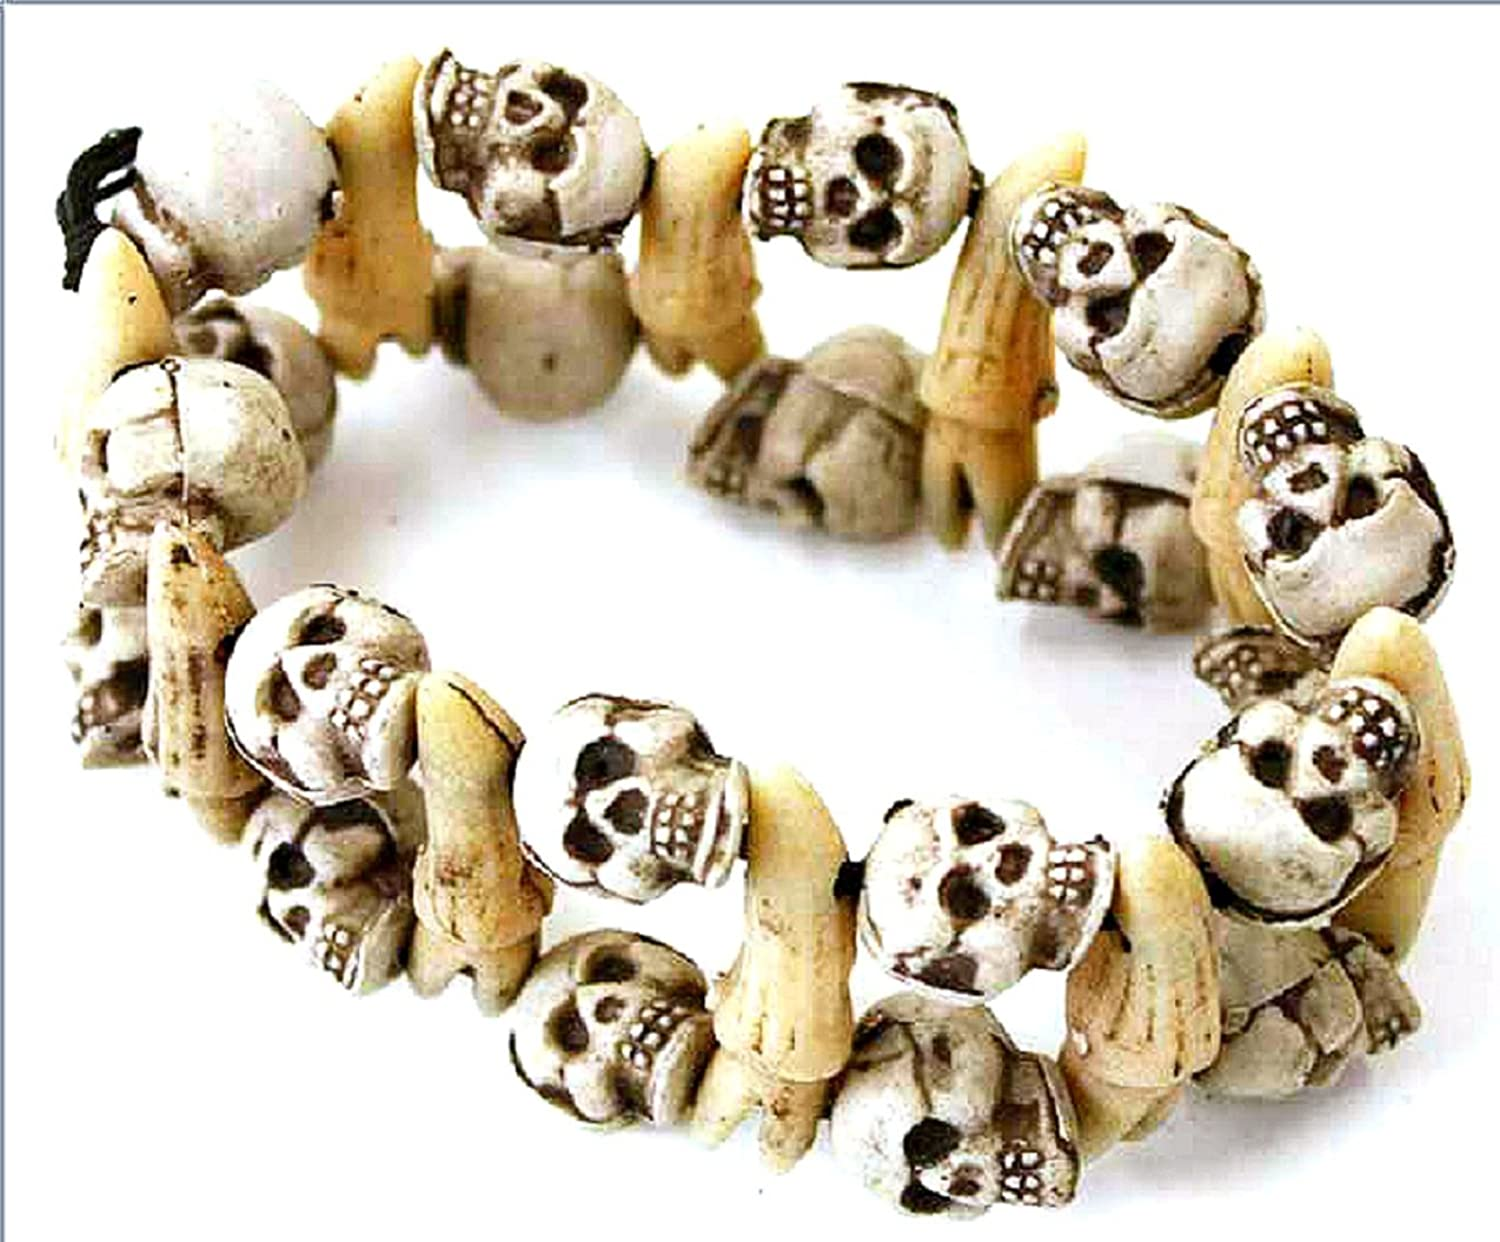 Double Skull & Teeth Voodoo-Style Pirate Bracelet